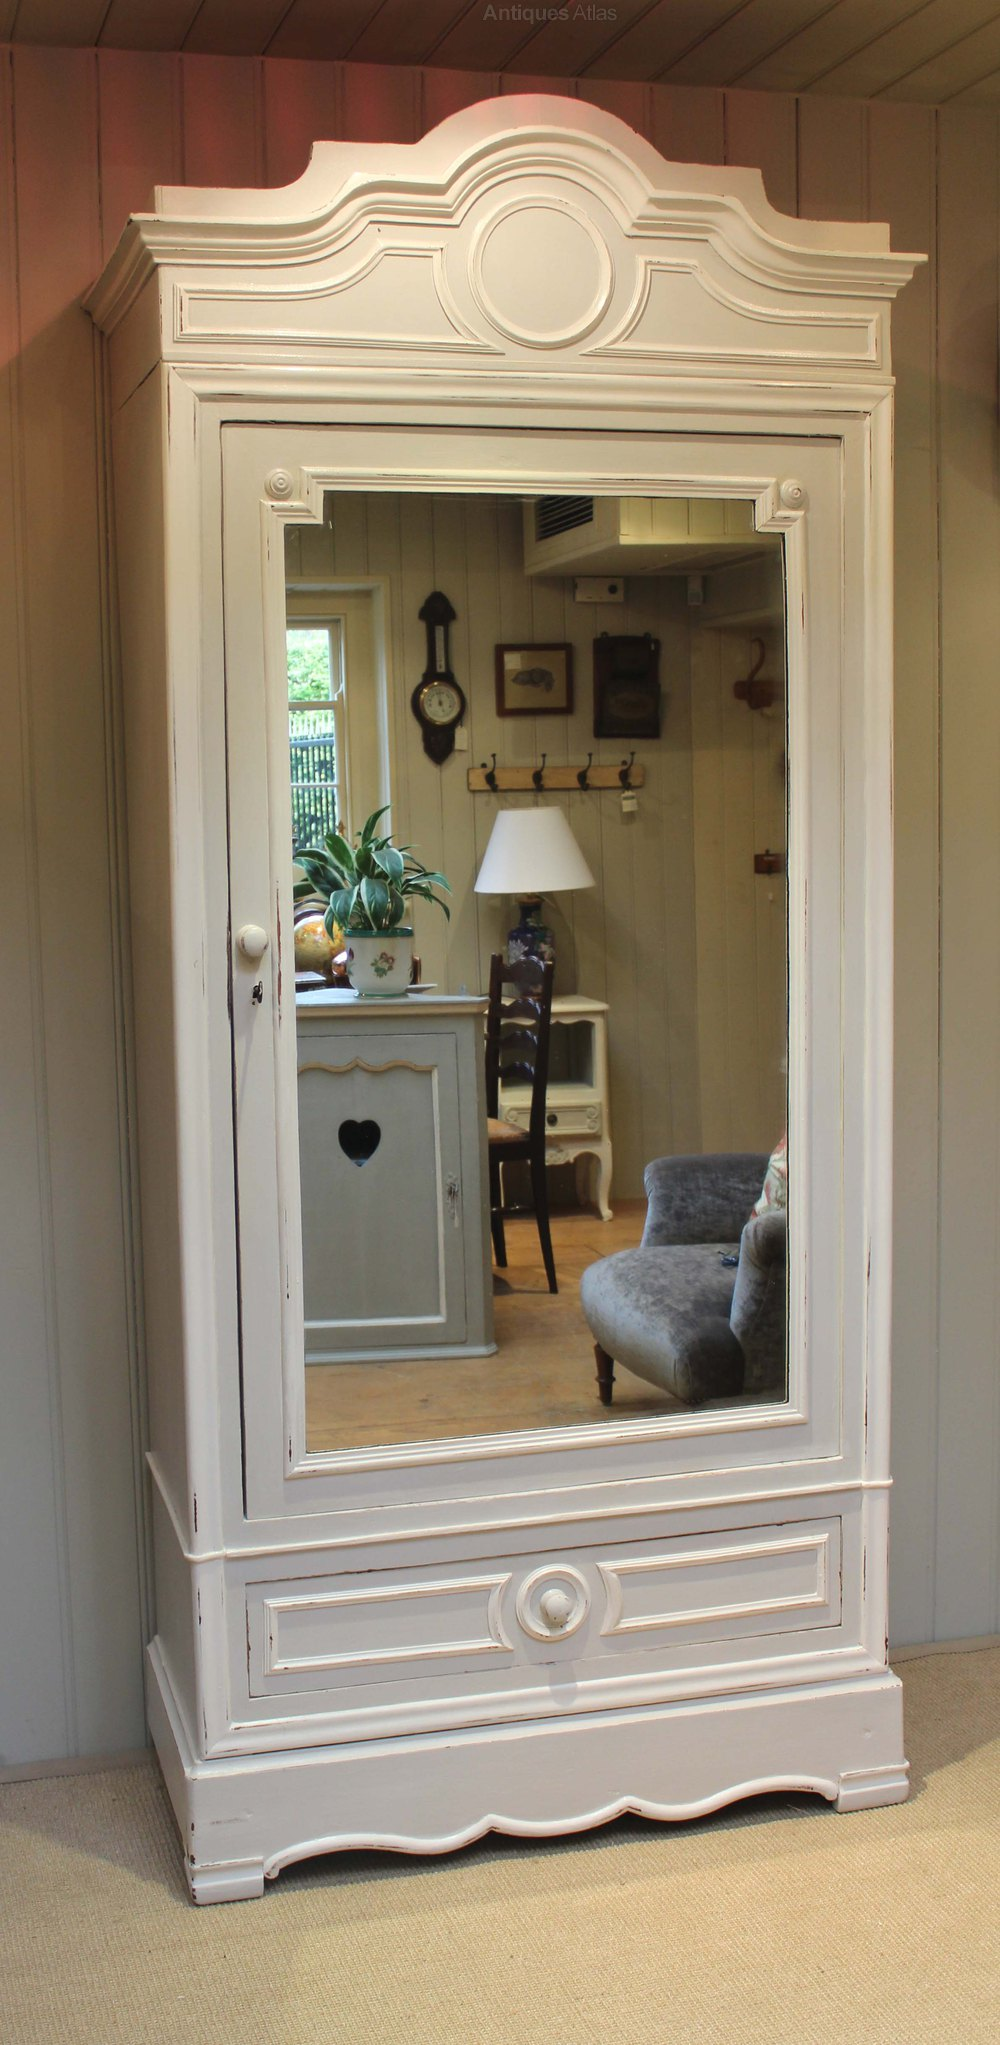 Painted Single Mirrored Door Armoire Antiques Atlas